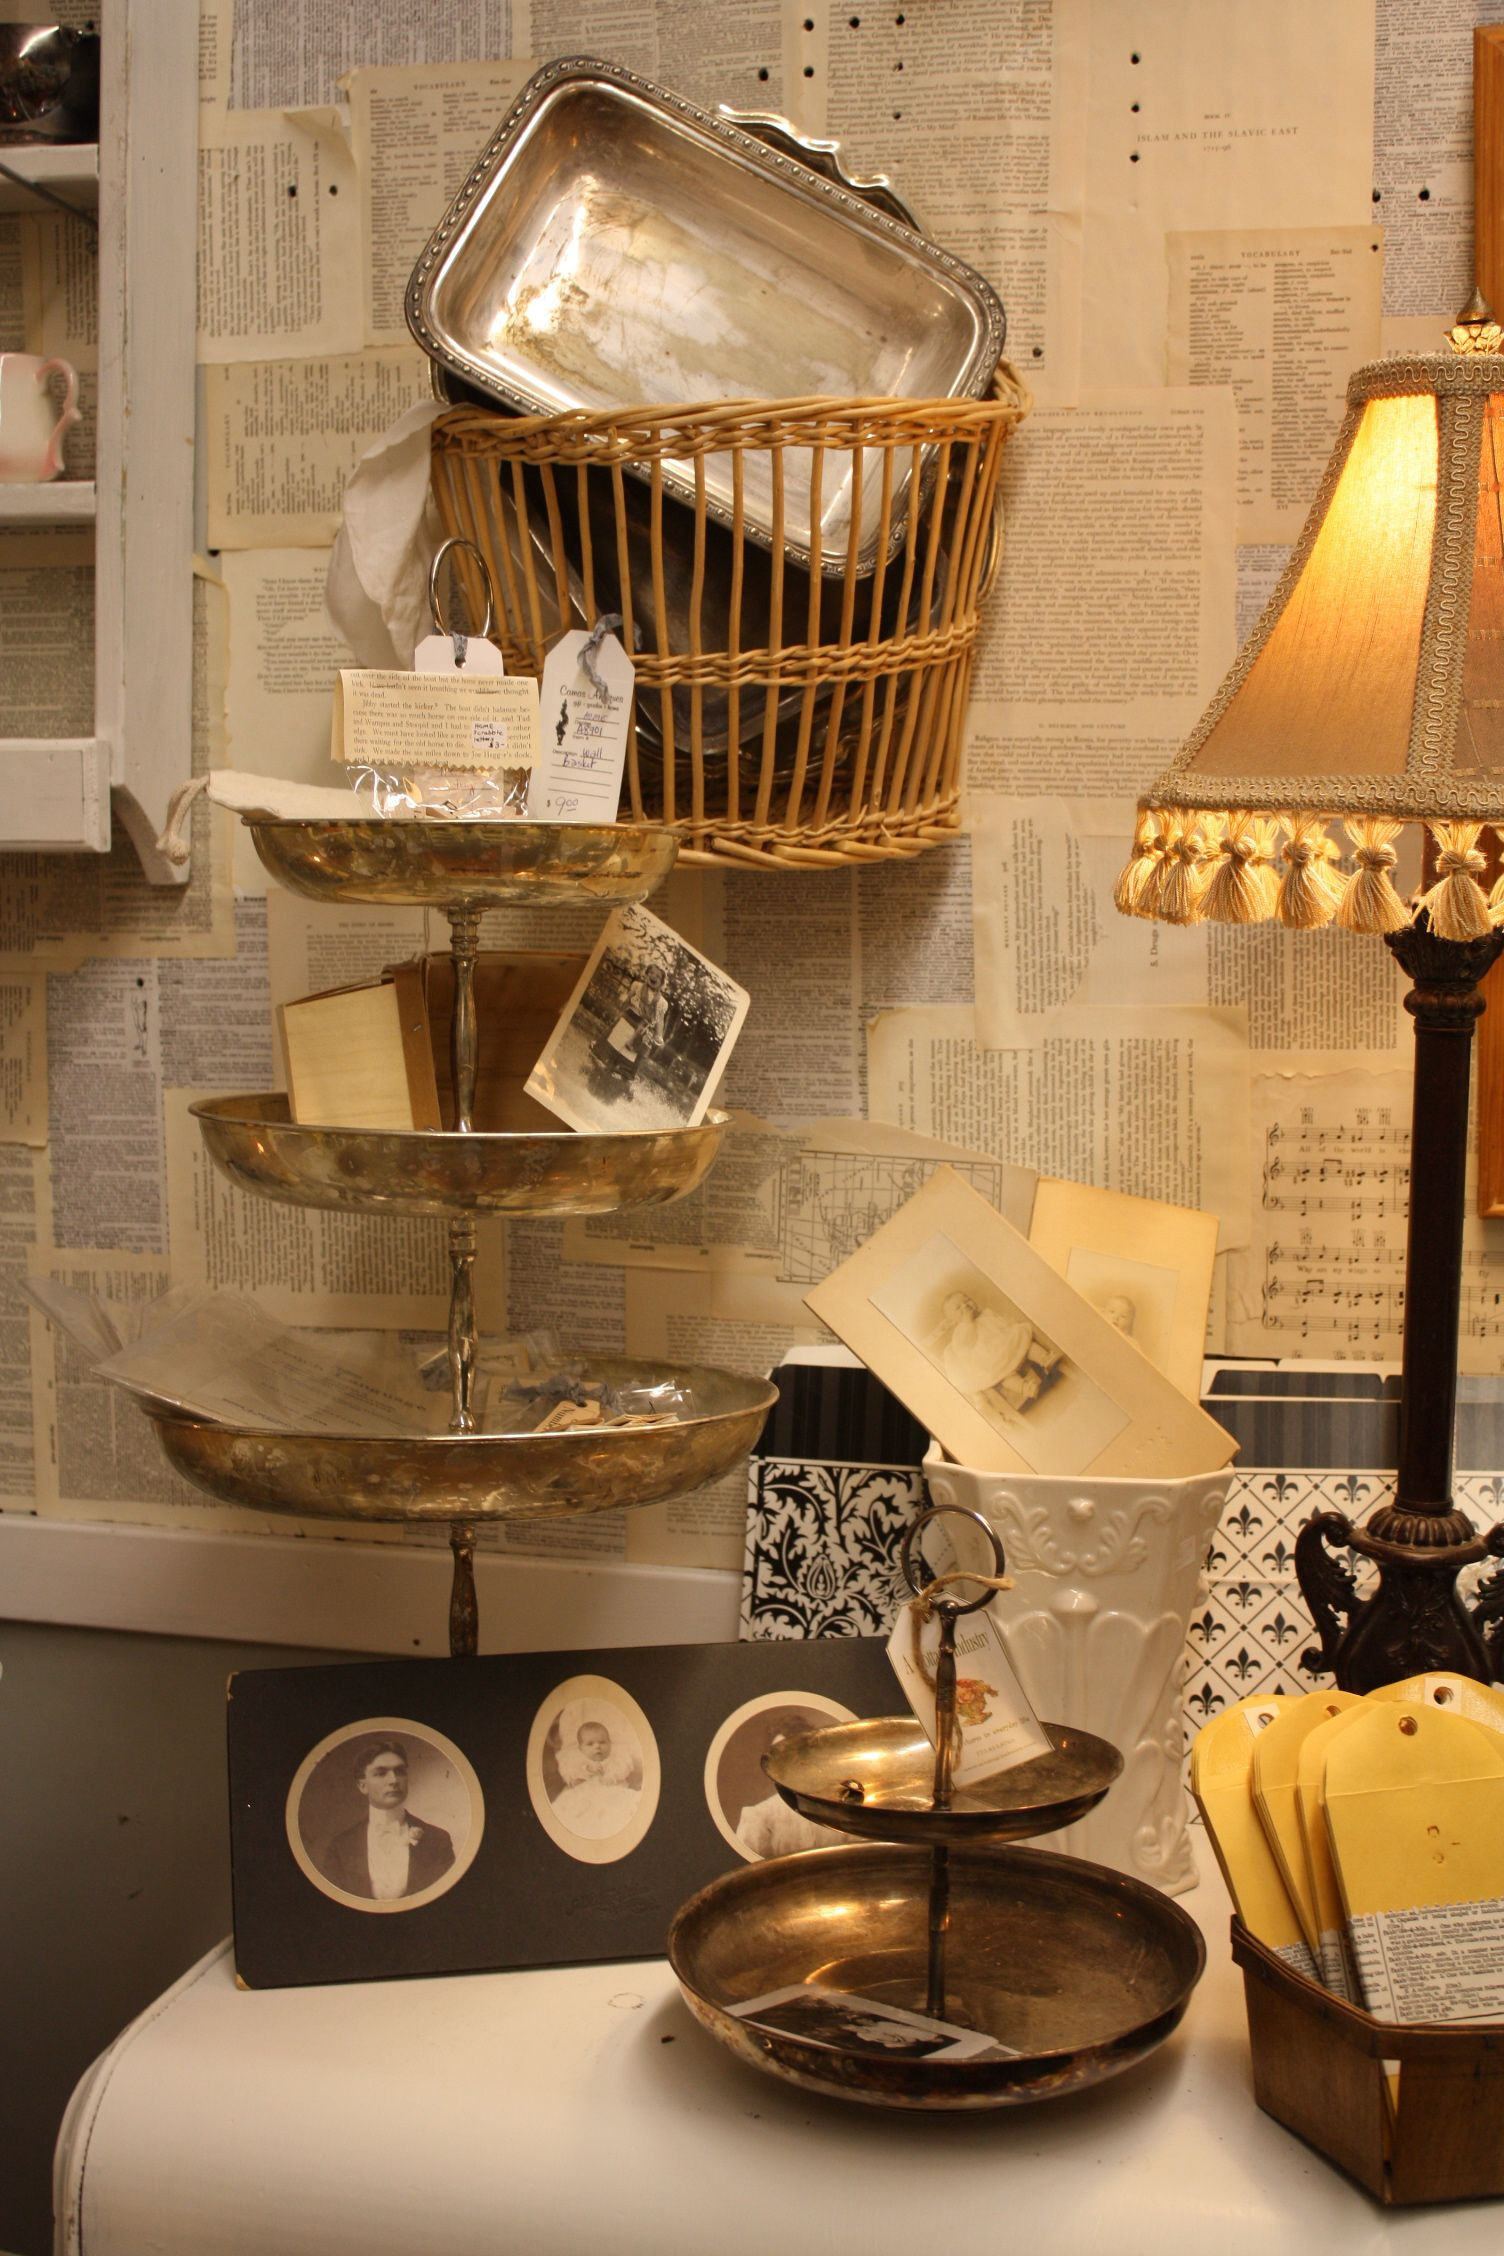 A Lil Peek At My Booth Space Pose Pinterest Antique Mall